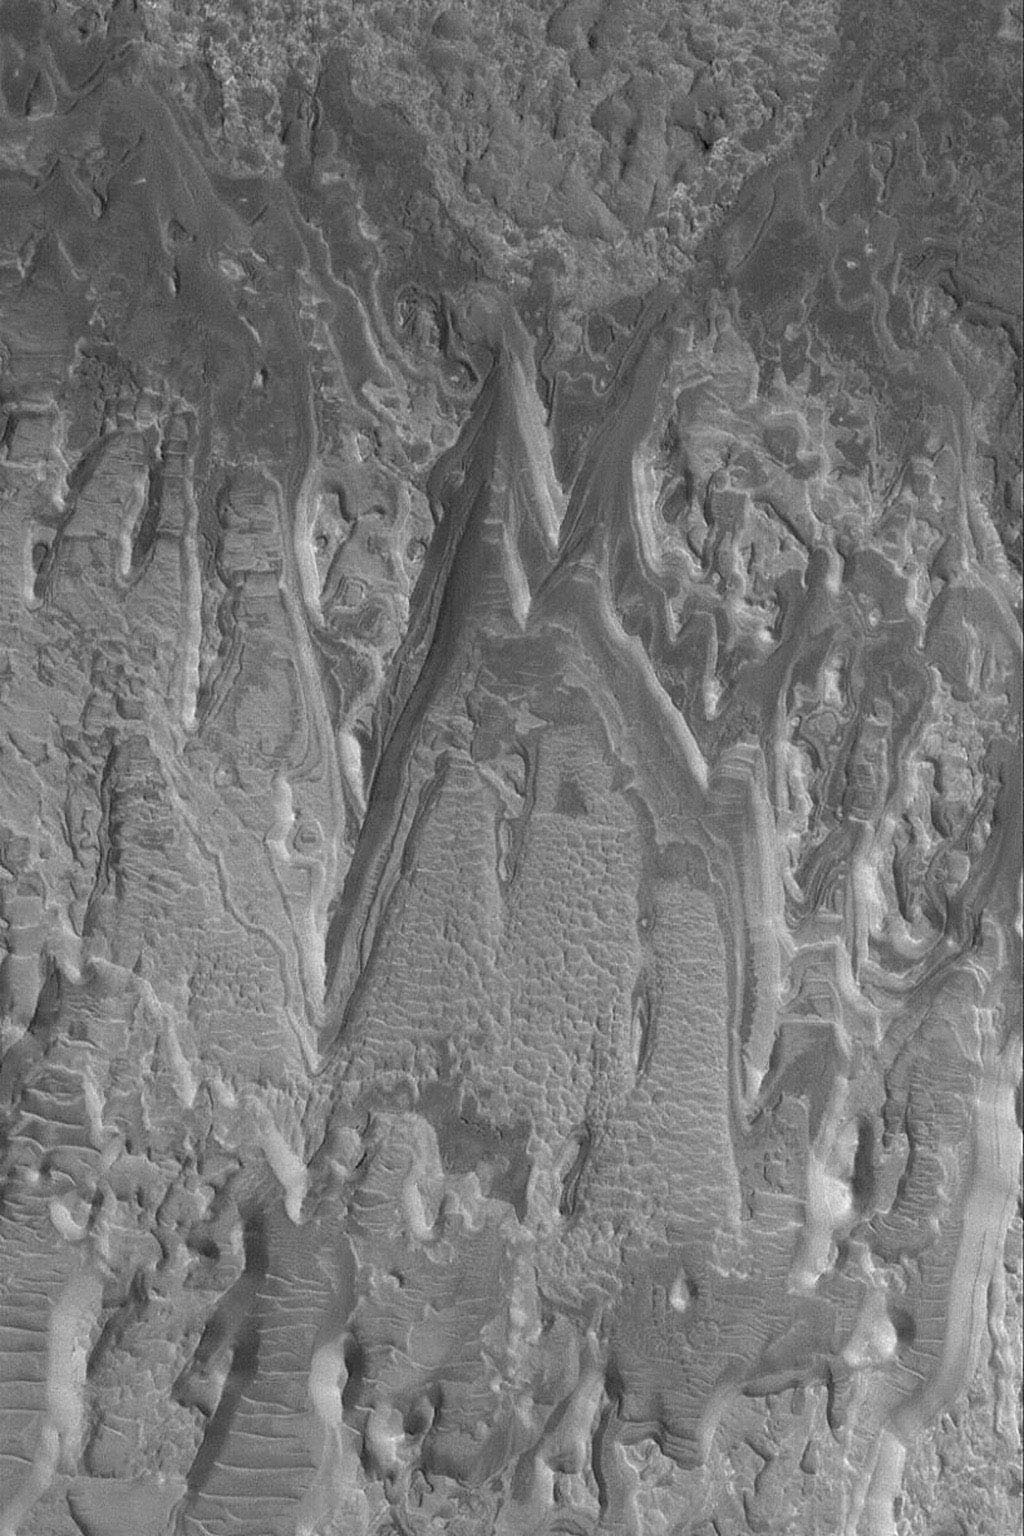 NASA's Mars Global Surveyor shows eroded layer outcrops in a crater in Terra Tyrrhena on Mars where exposures of layered, sedimentary rock are common.